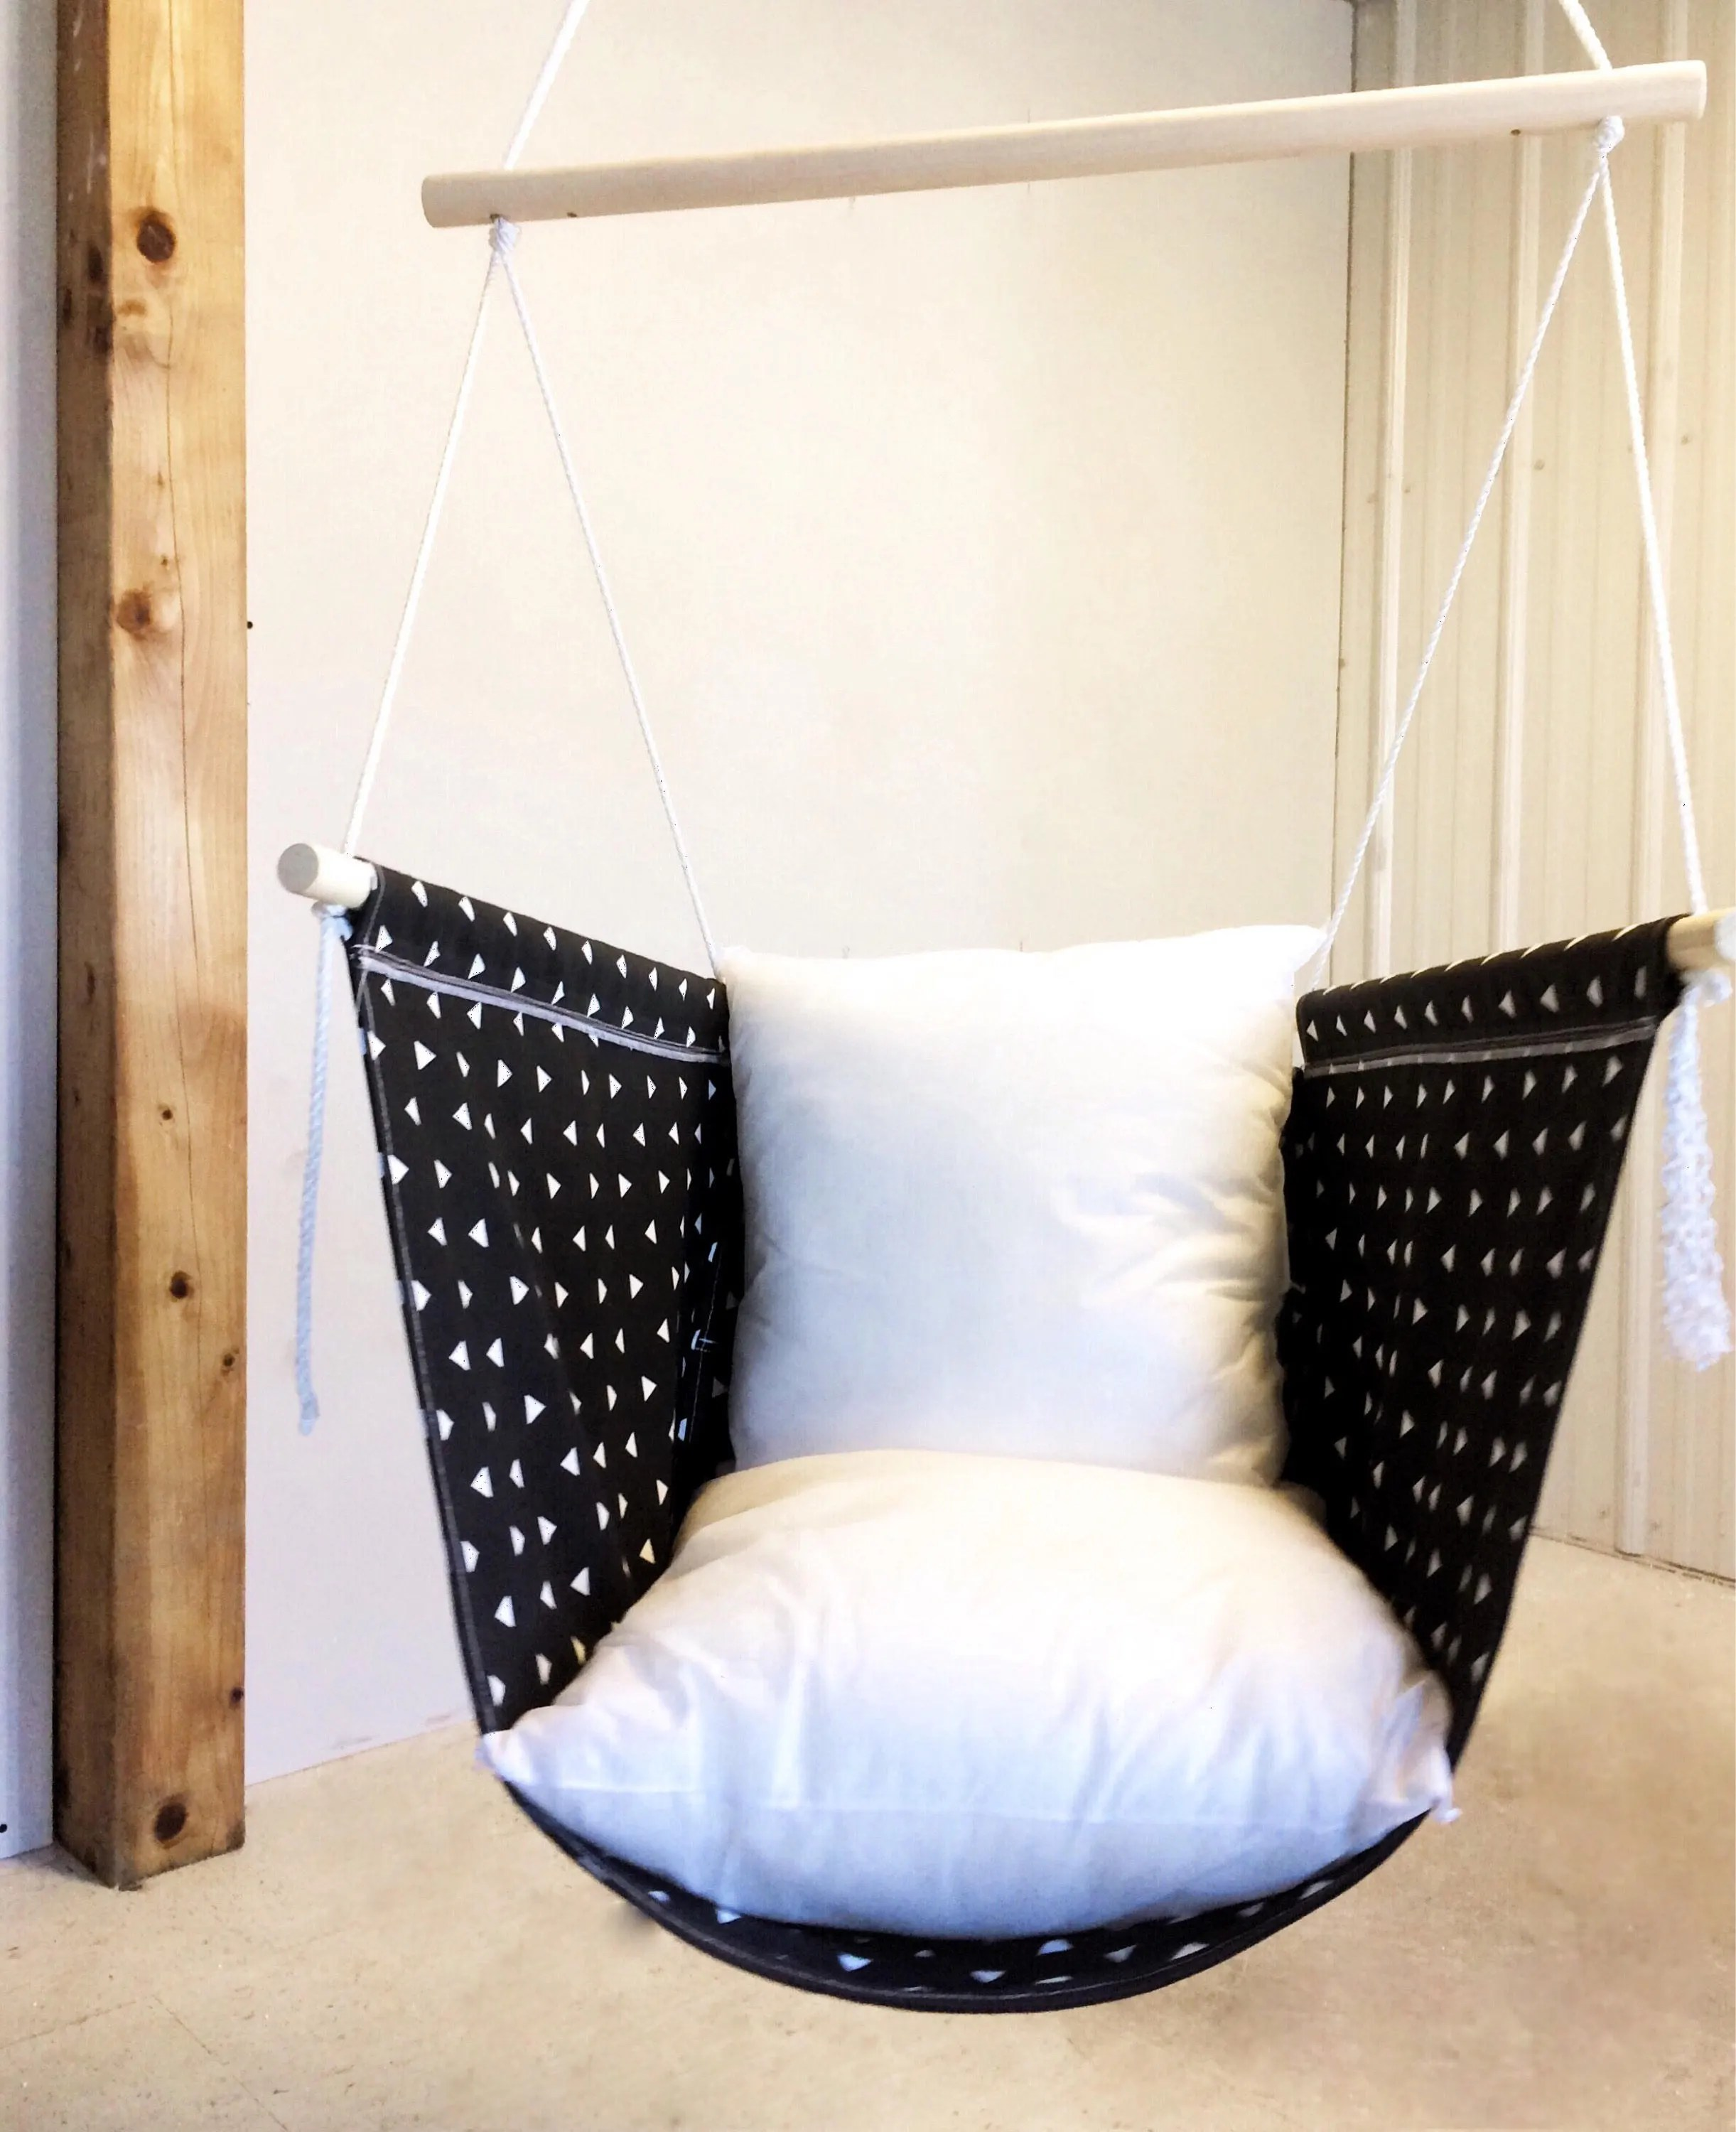 hanging chair cocoon replacement straps for outdoor chairs hammock adult and big kids swing